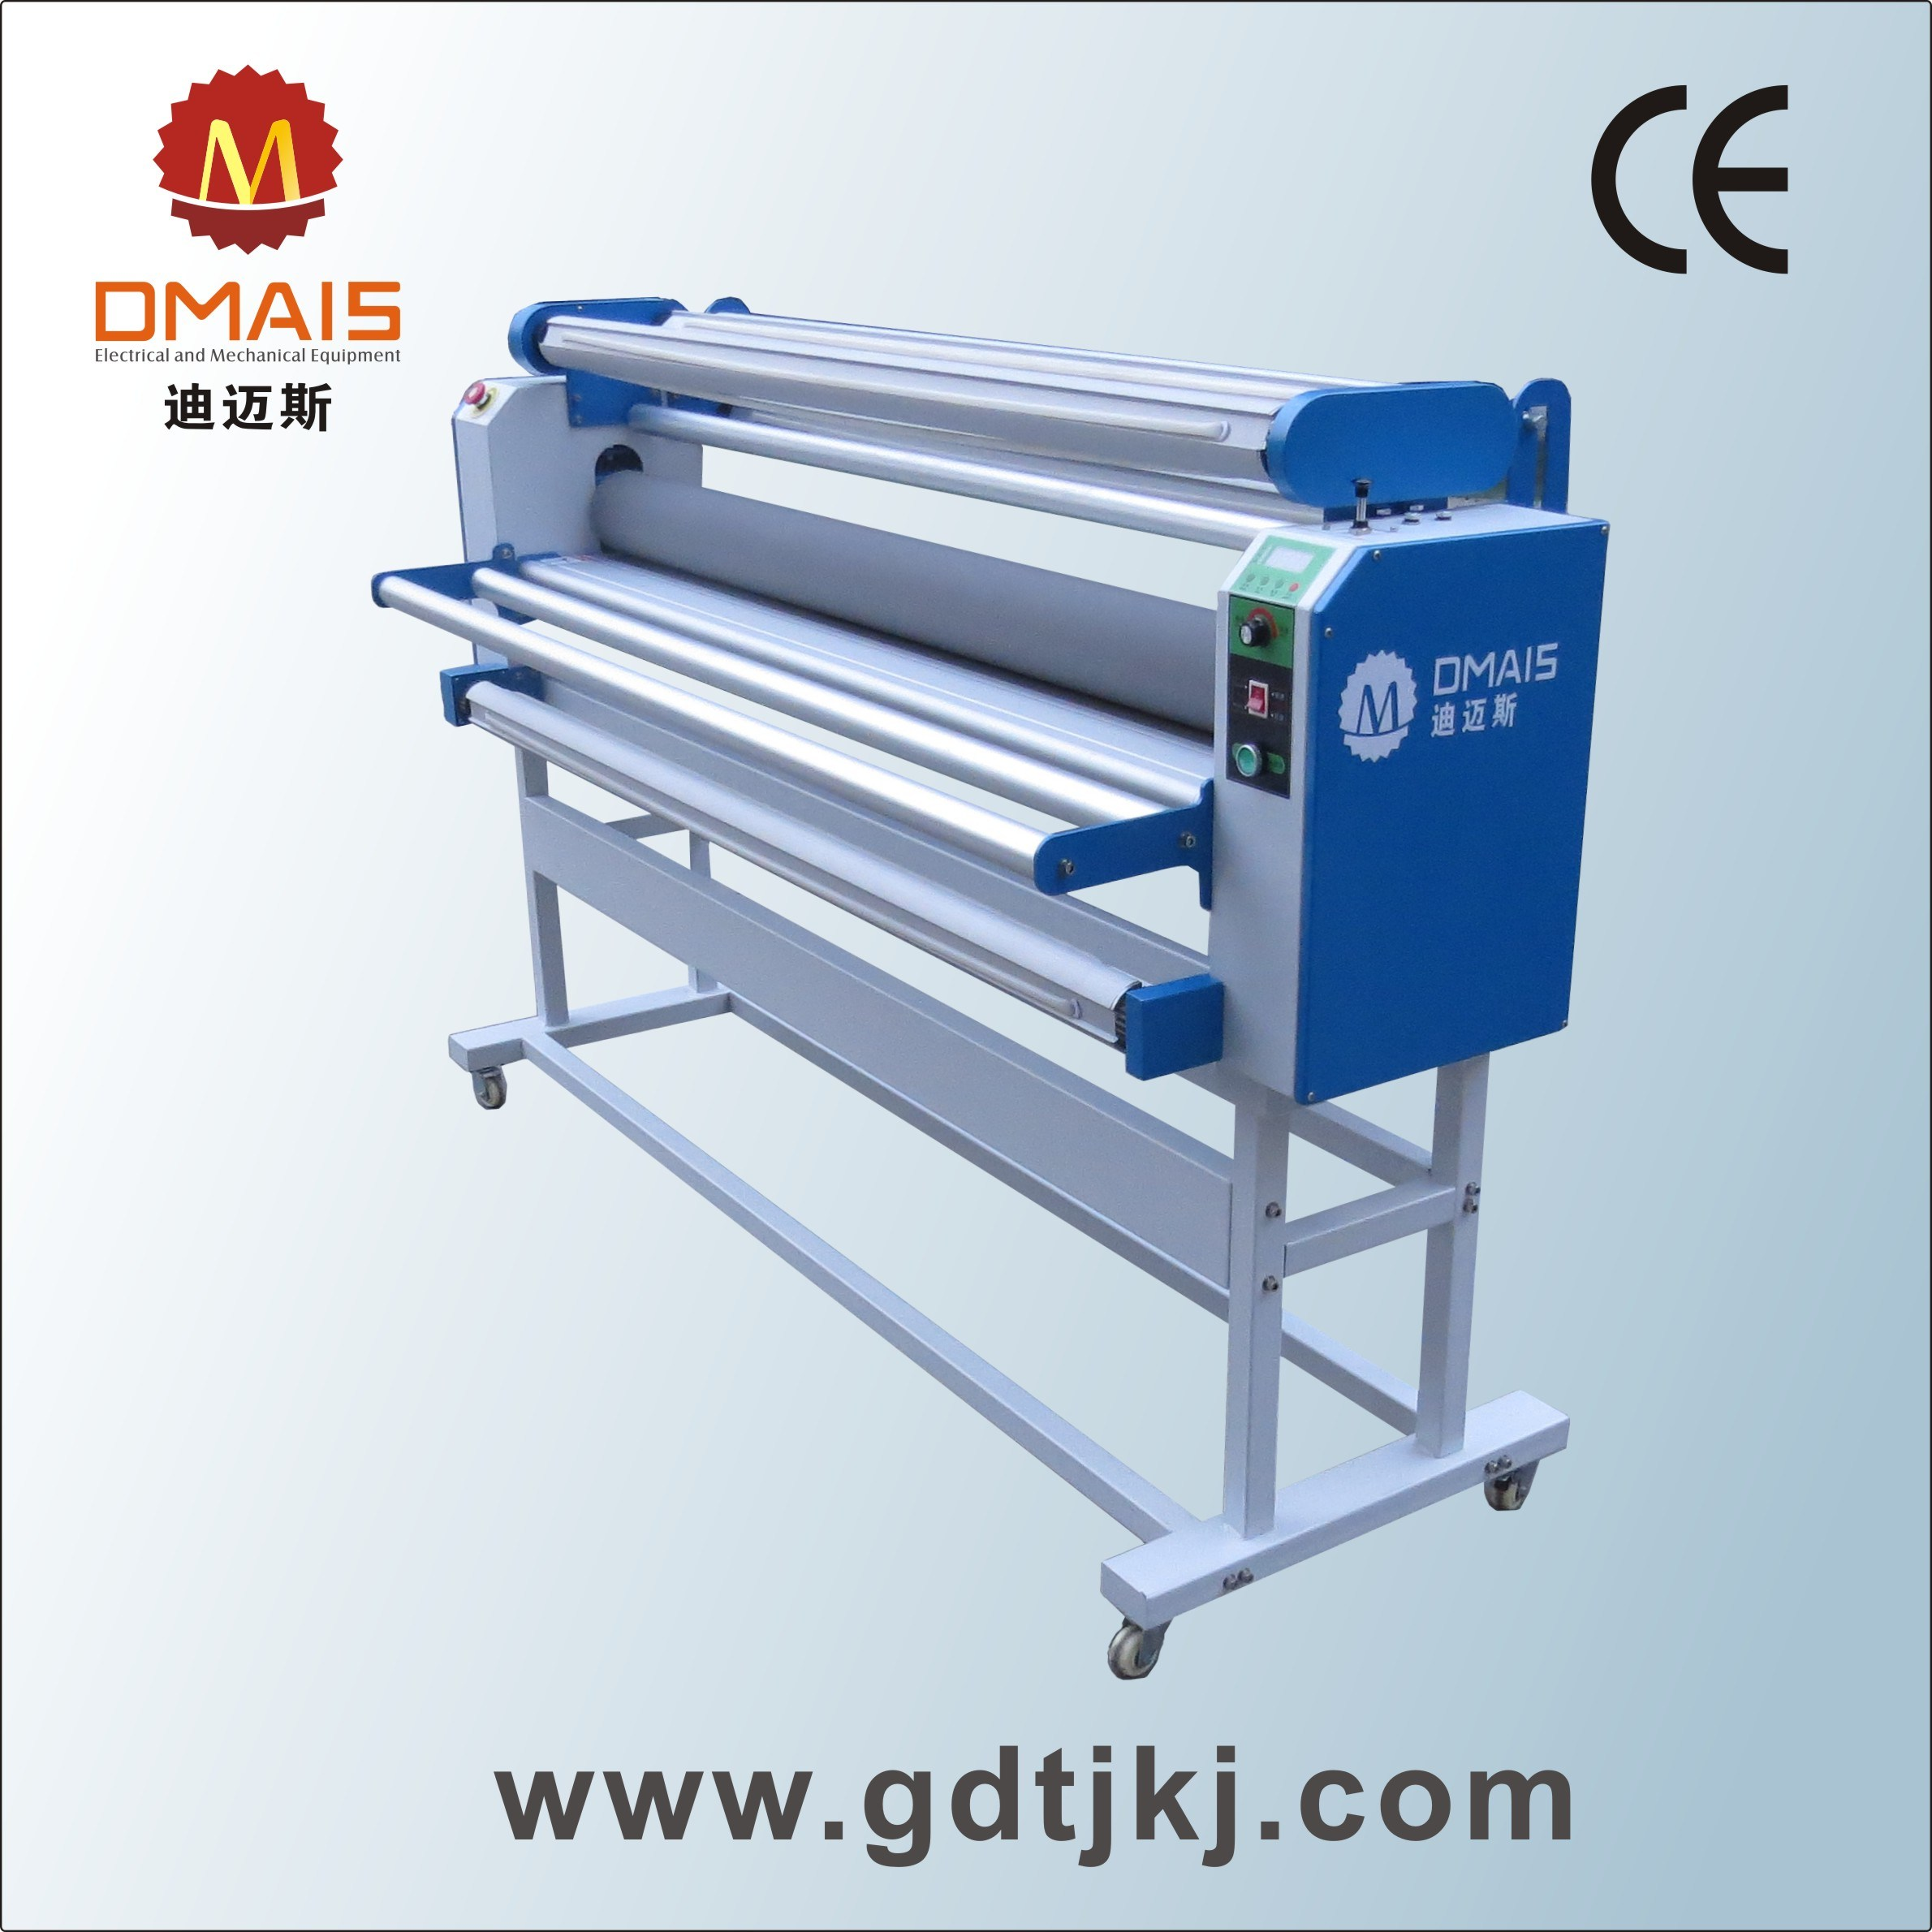 "Dmais 1.6m (63"") Mutli-Function Laminator-Wide Format Laminating Machine"